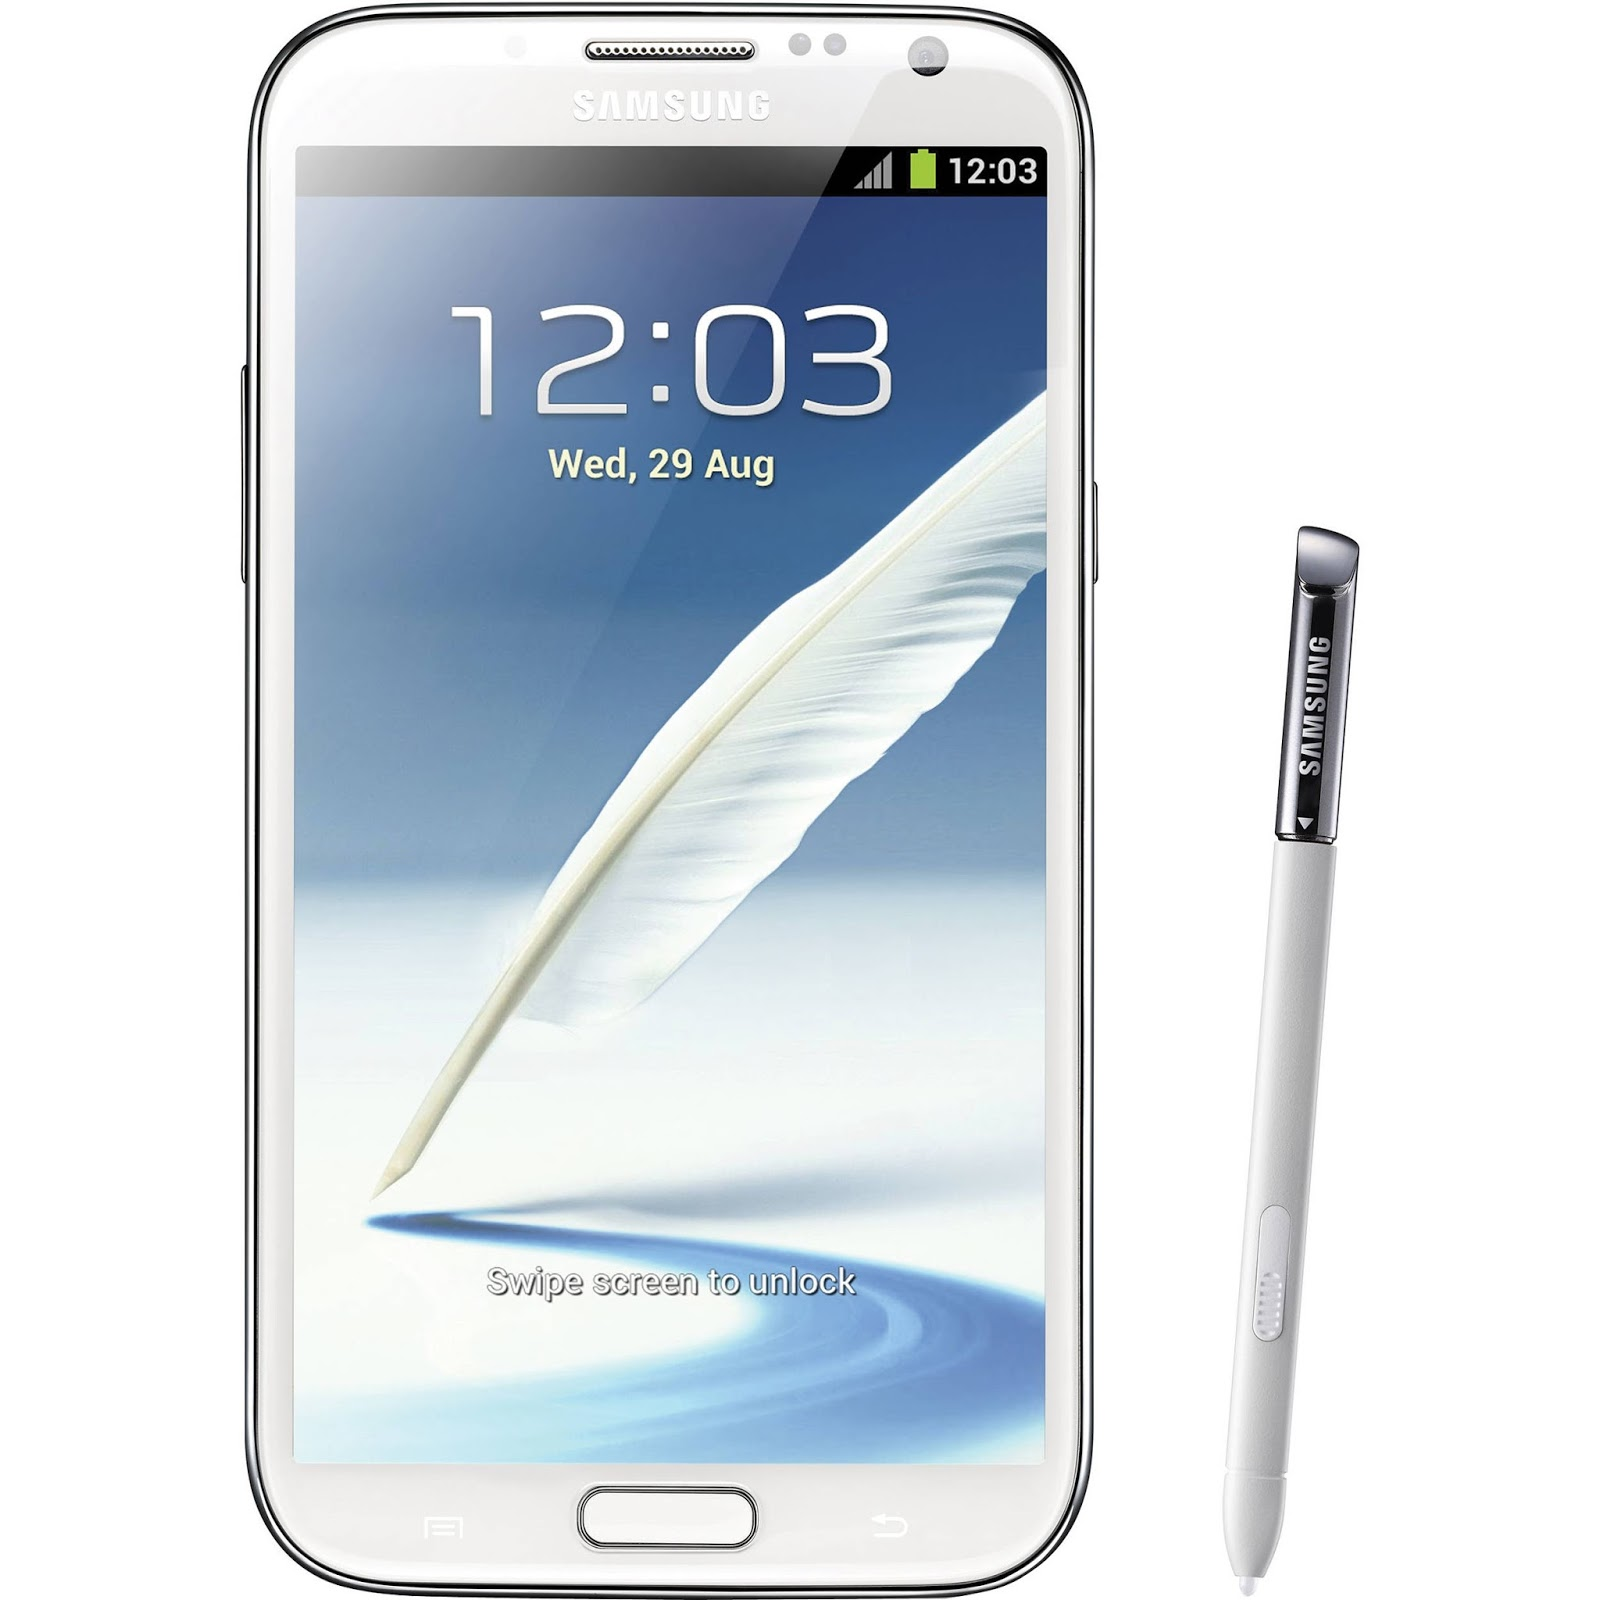 RomKingz: Download Samsung Galaxy Note 2 SGH i317 & SGH